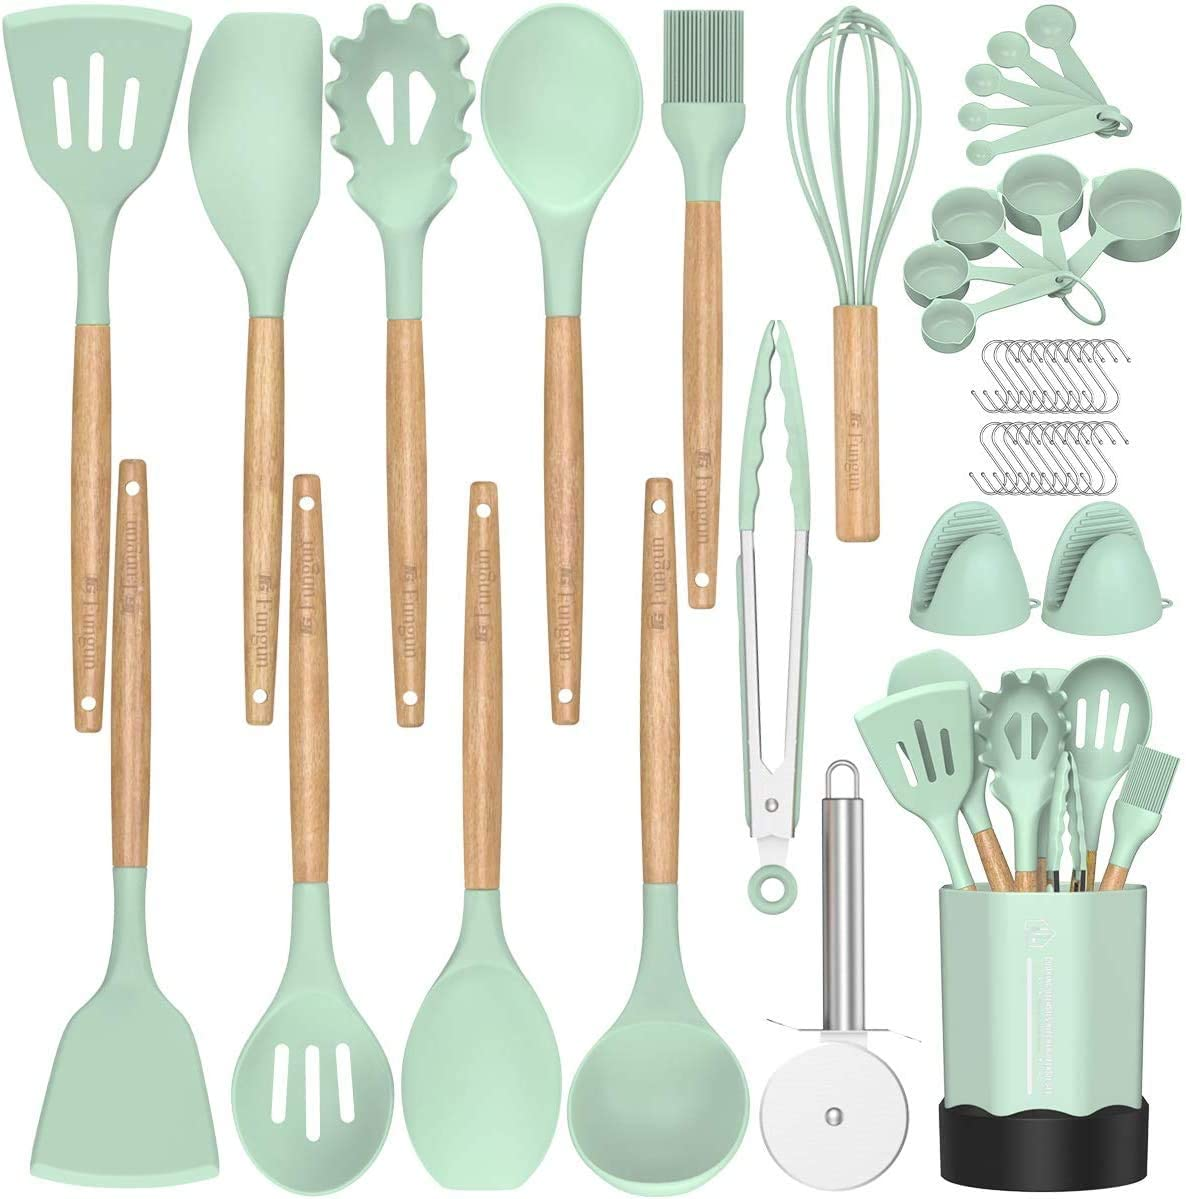 BPA Free Non Toxic Cooking Utensils Silicone Kitchen Cooking Utensil Set Black Kitchen Tools Gift Fungun 26 Pcs Kitchen Utensils Spatula Set with Utensil Holder for Nonstick Cookware